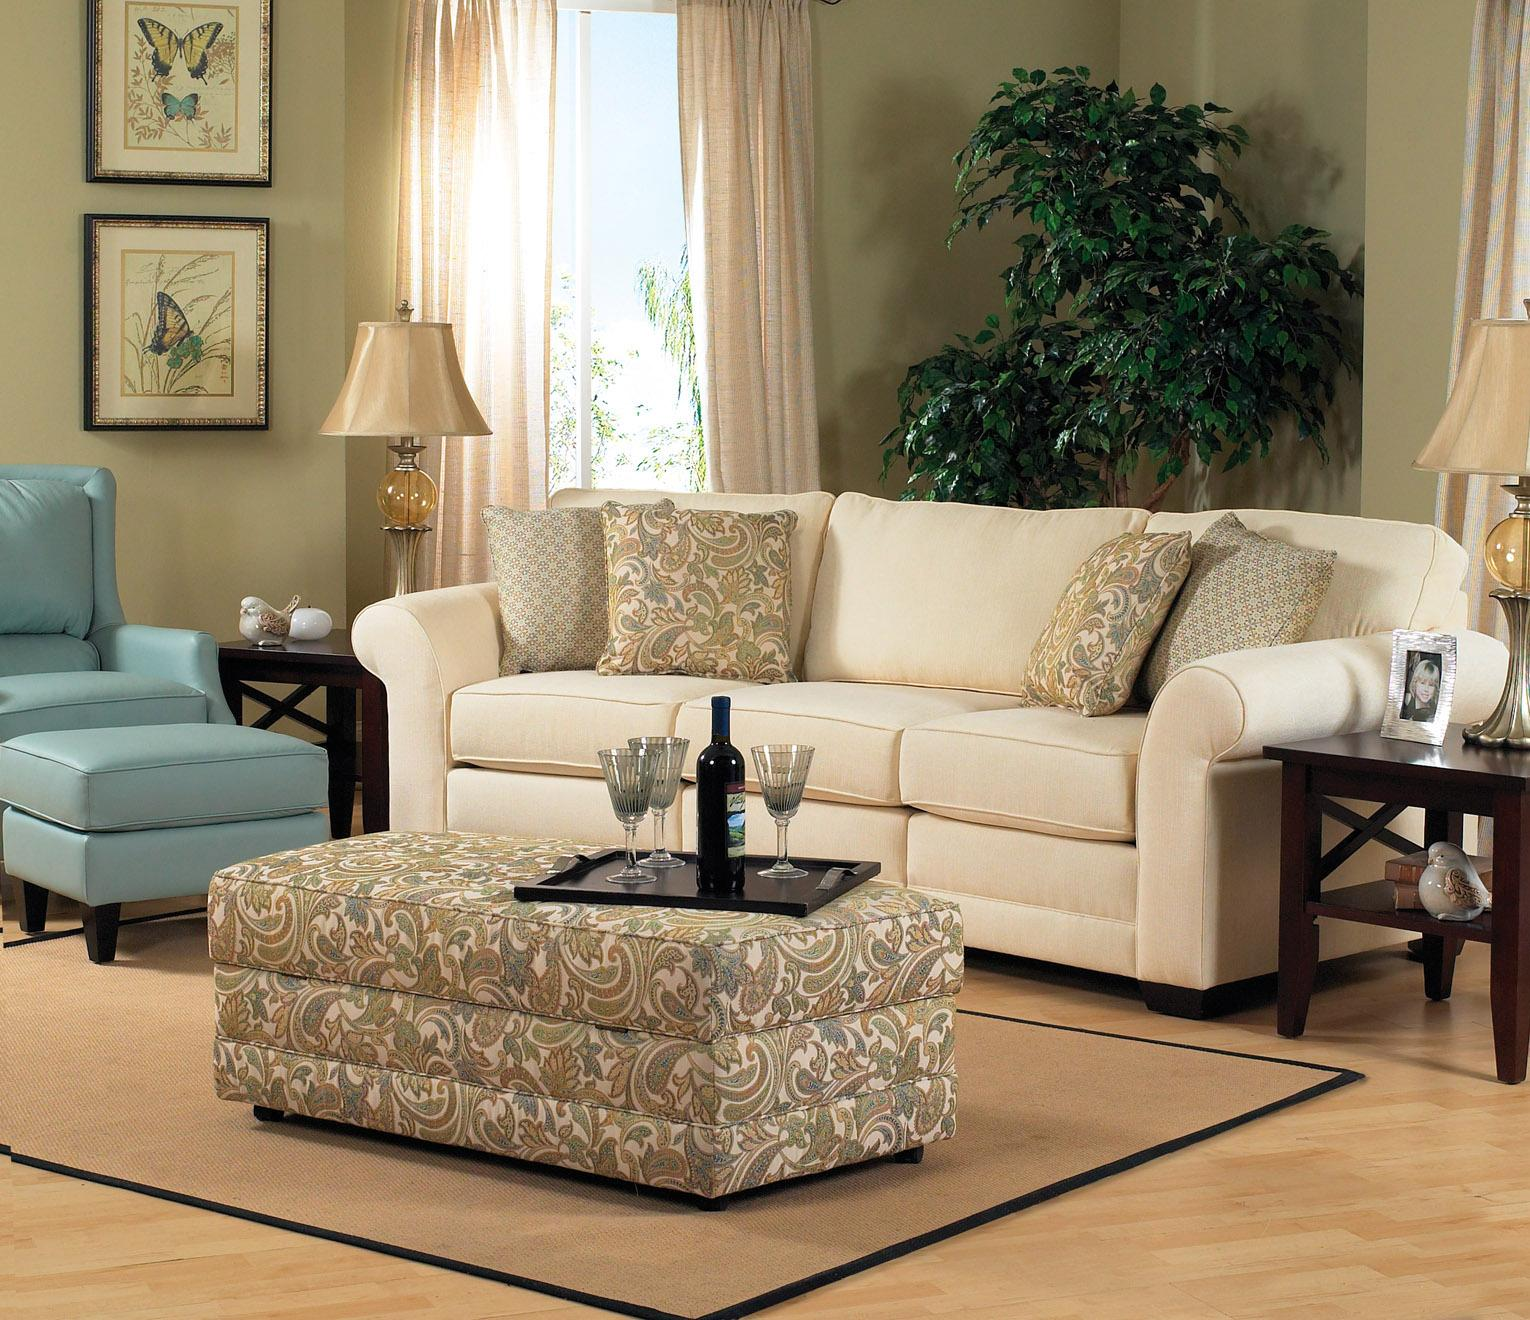 England Brantley 5 Seat Sectional Sofa With Cuddler | SuperStore |  Sectional Sofas